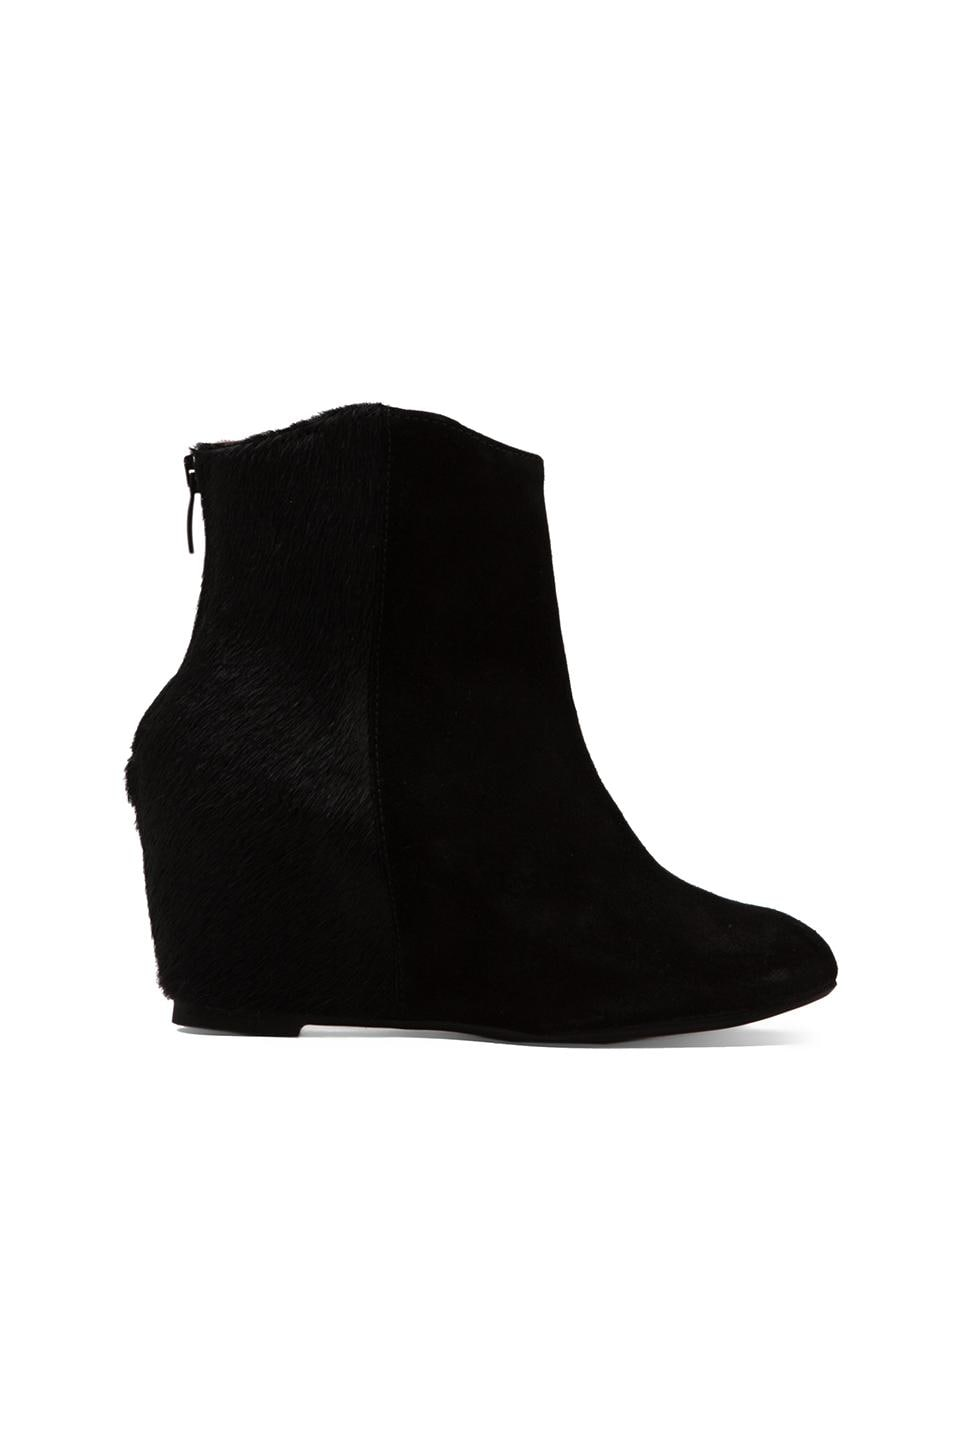 H by Hudson Sefton Bootie in Black Pony